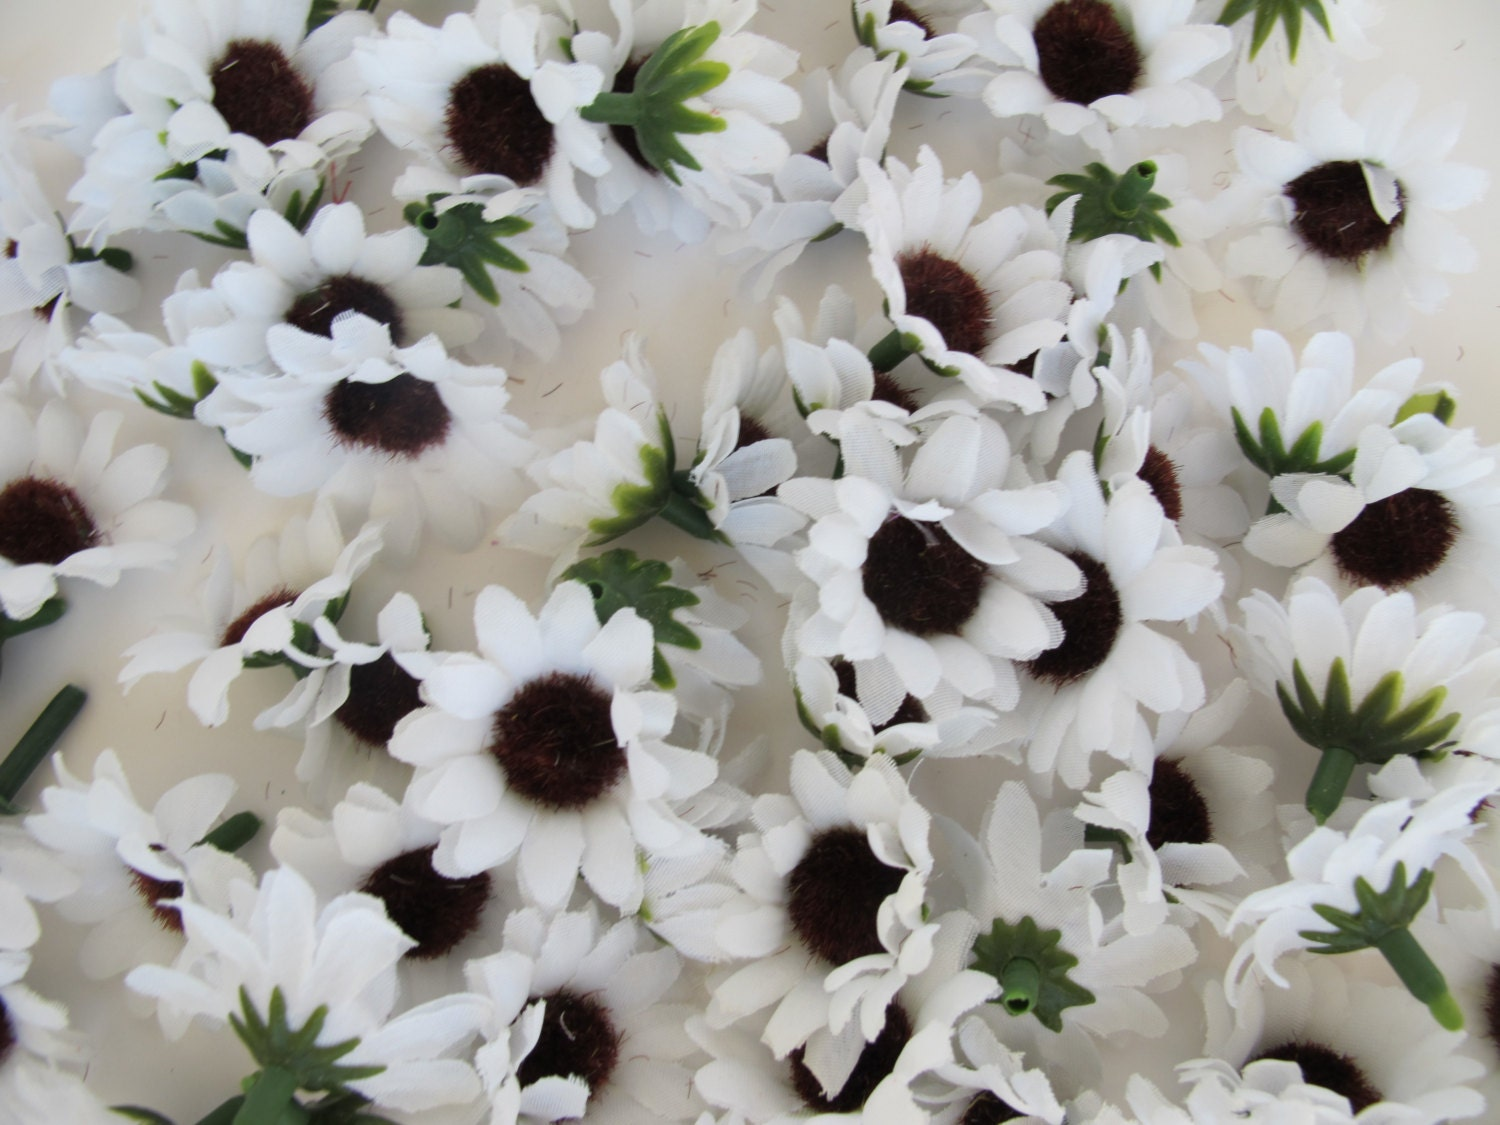 Lot of 60 Artificial Daisies Sunflowers Silk Flowers Little White ...